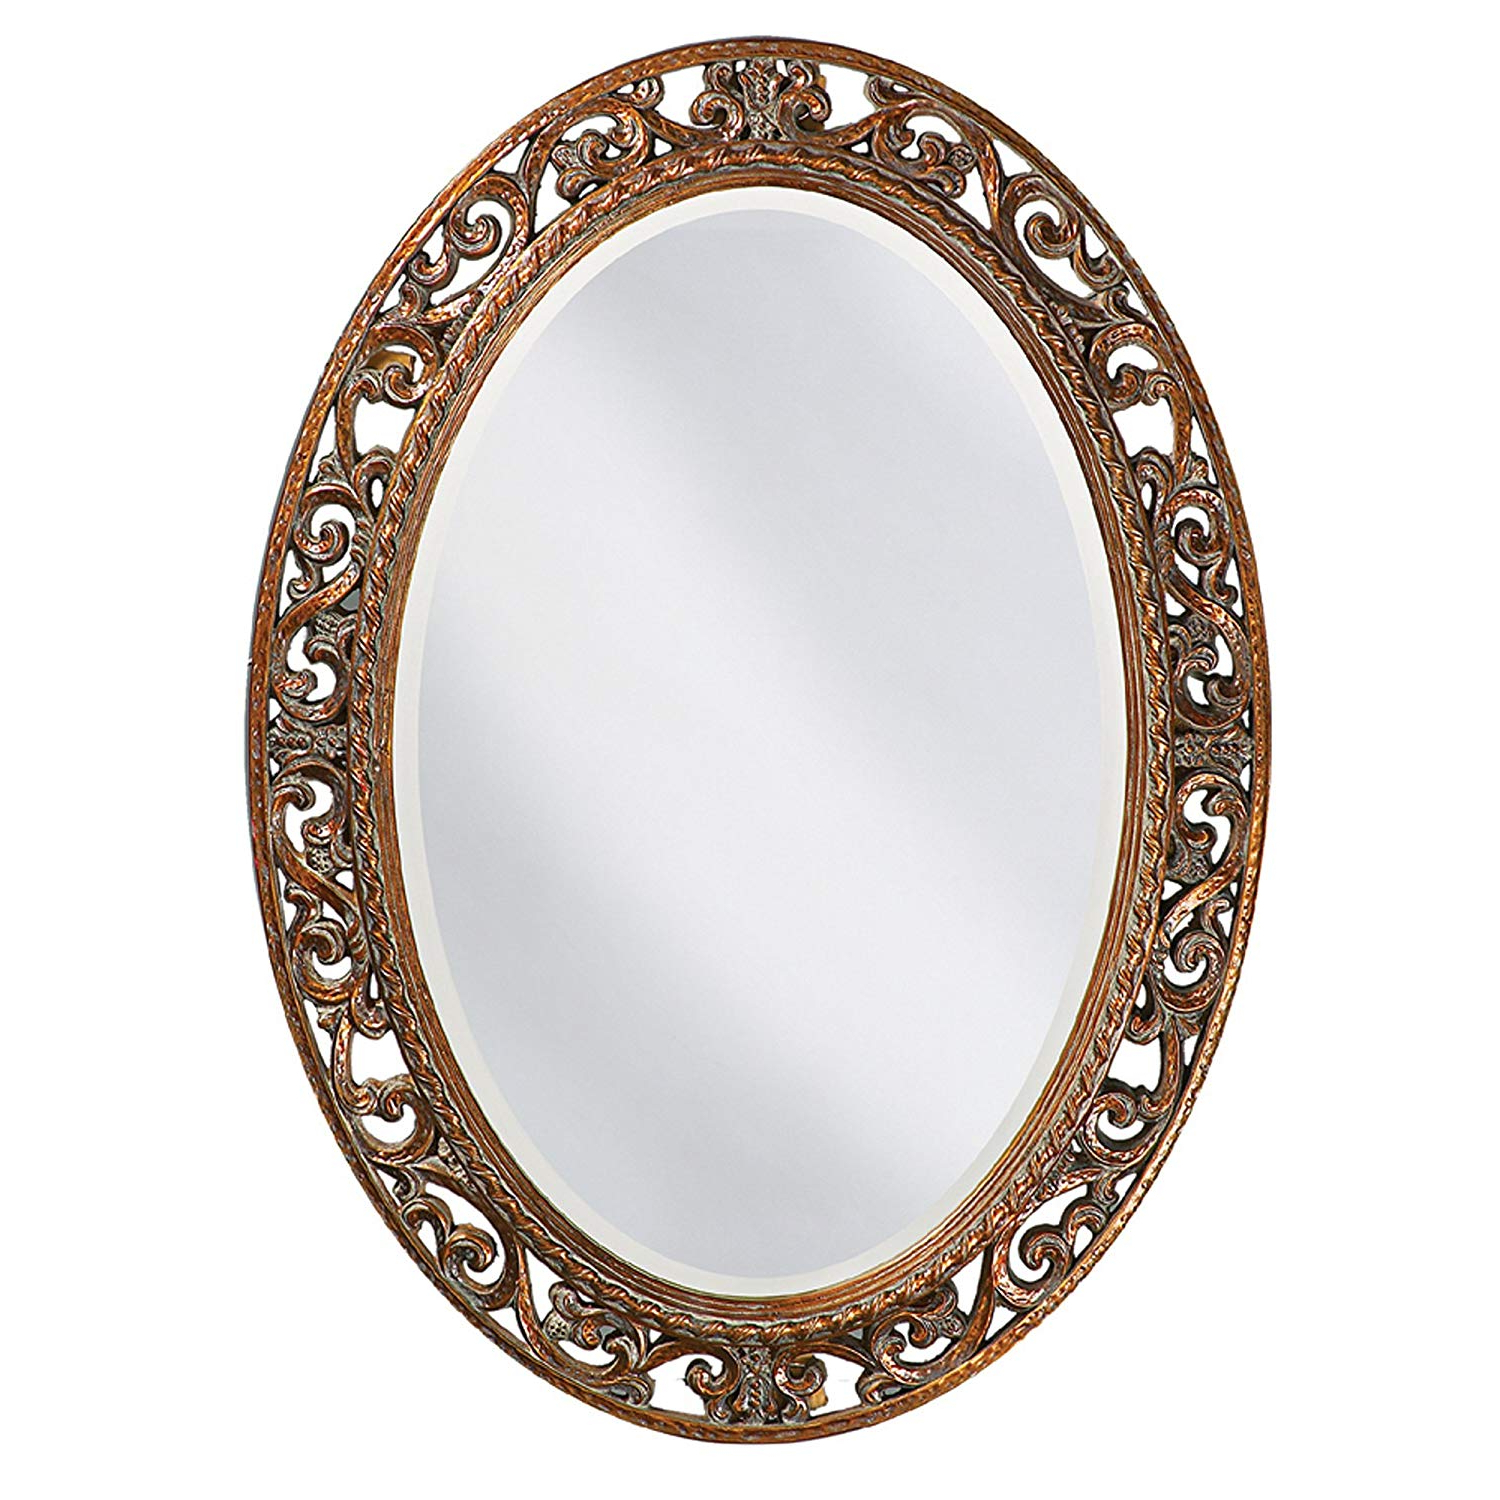 2020 Bracelet Traditional Accent Mirrors Intended For Howard Elliott Suzanne Mirror, Oval Antique Gold Leaf, Resin Frame (View 8 of 20)